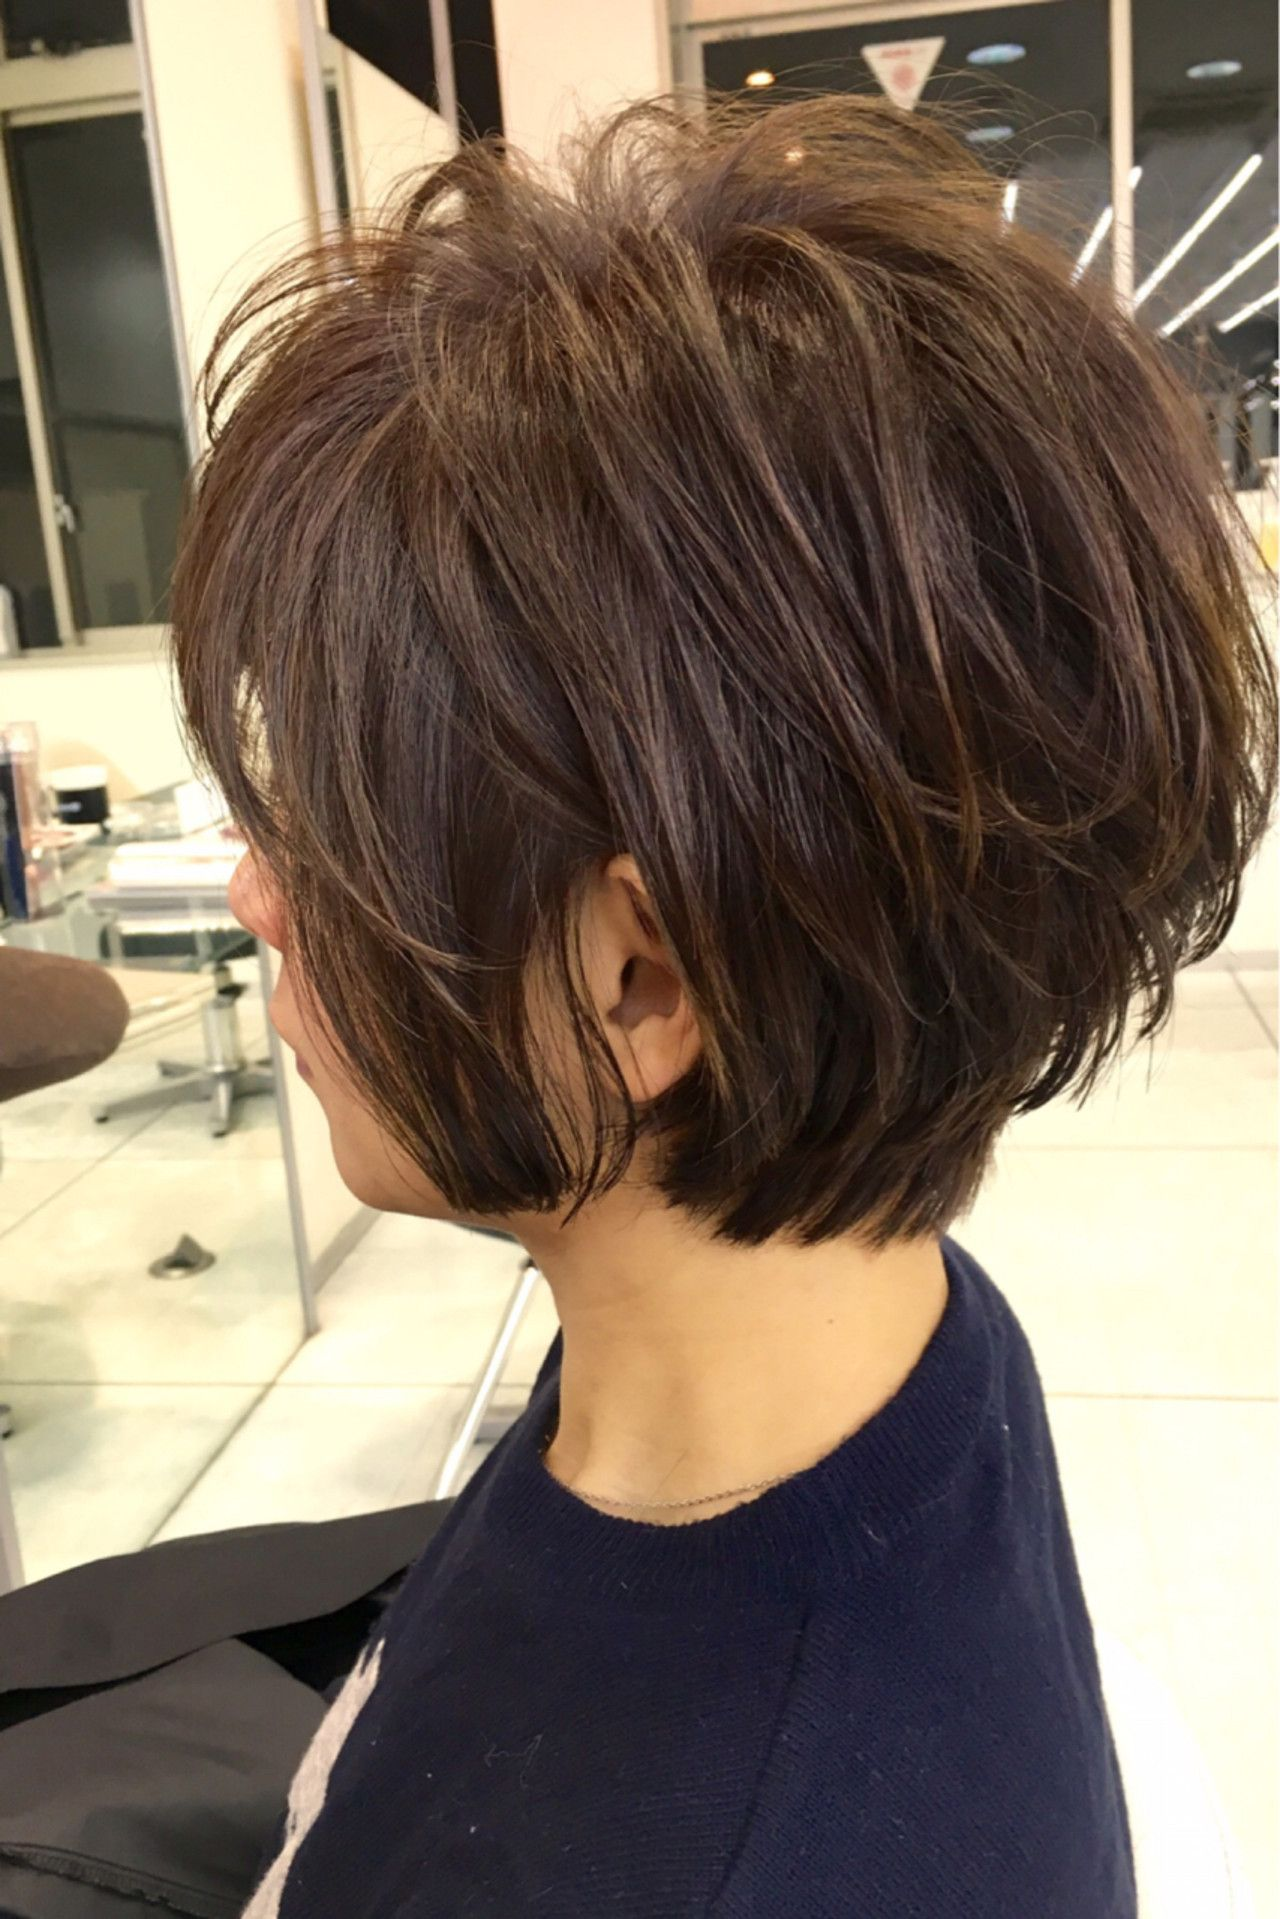 haircuts for faces and hair ゆるふわ 一目惚れボブ hair hair style 3726